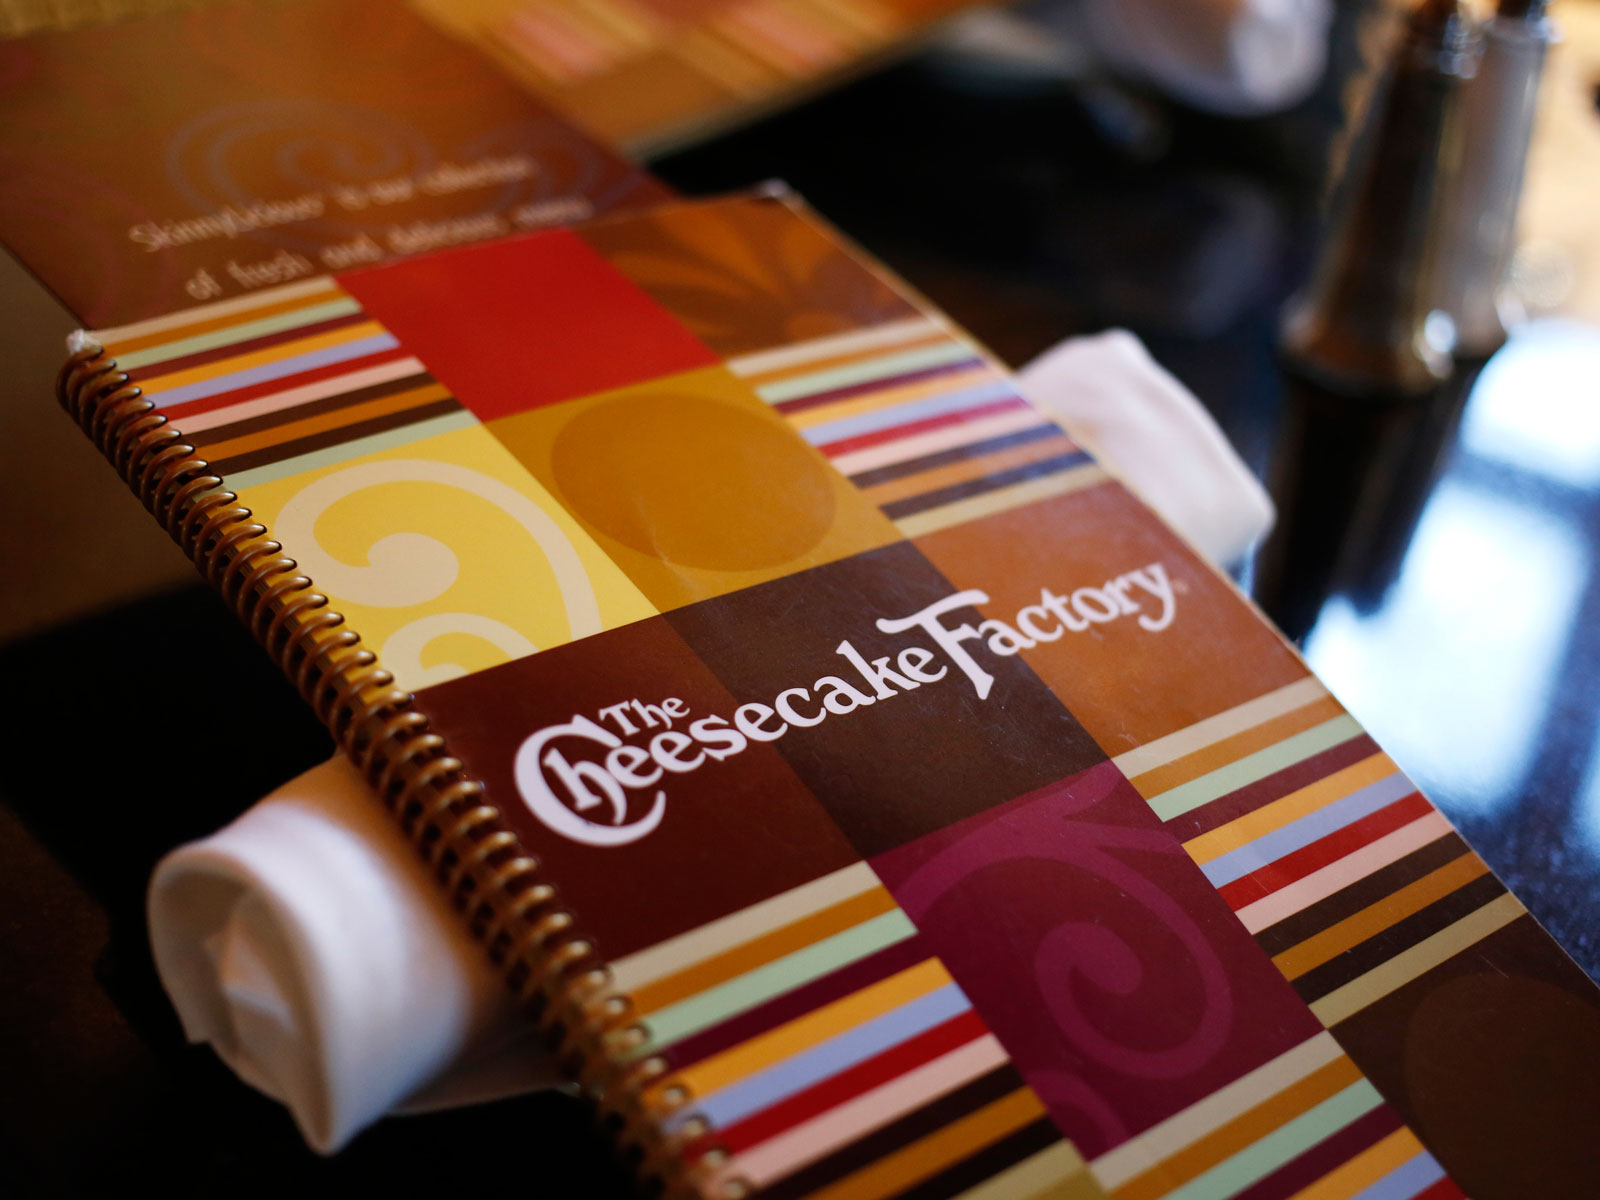 asmr-cheesecake-factory-FT-BLOG0518.jpg